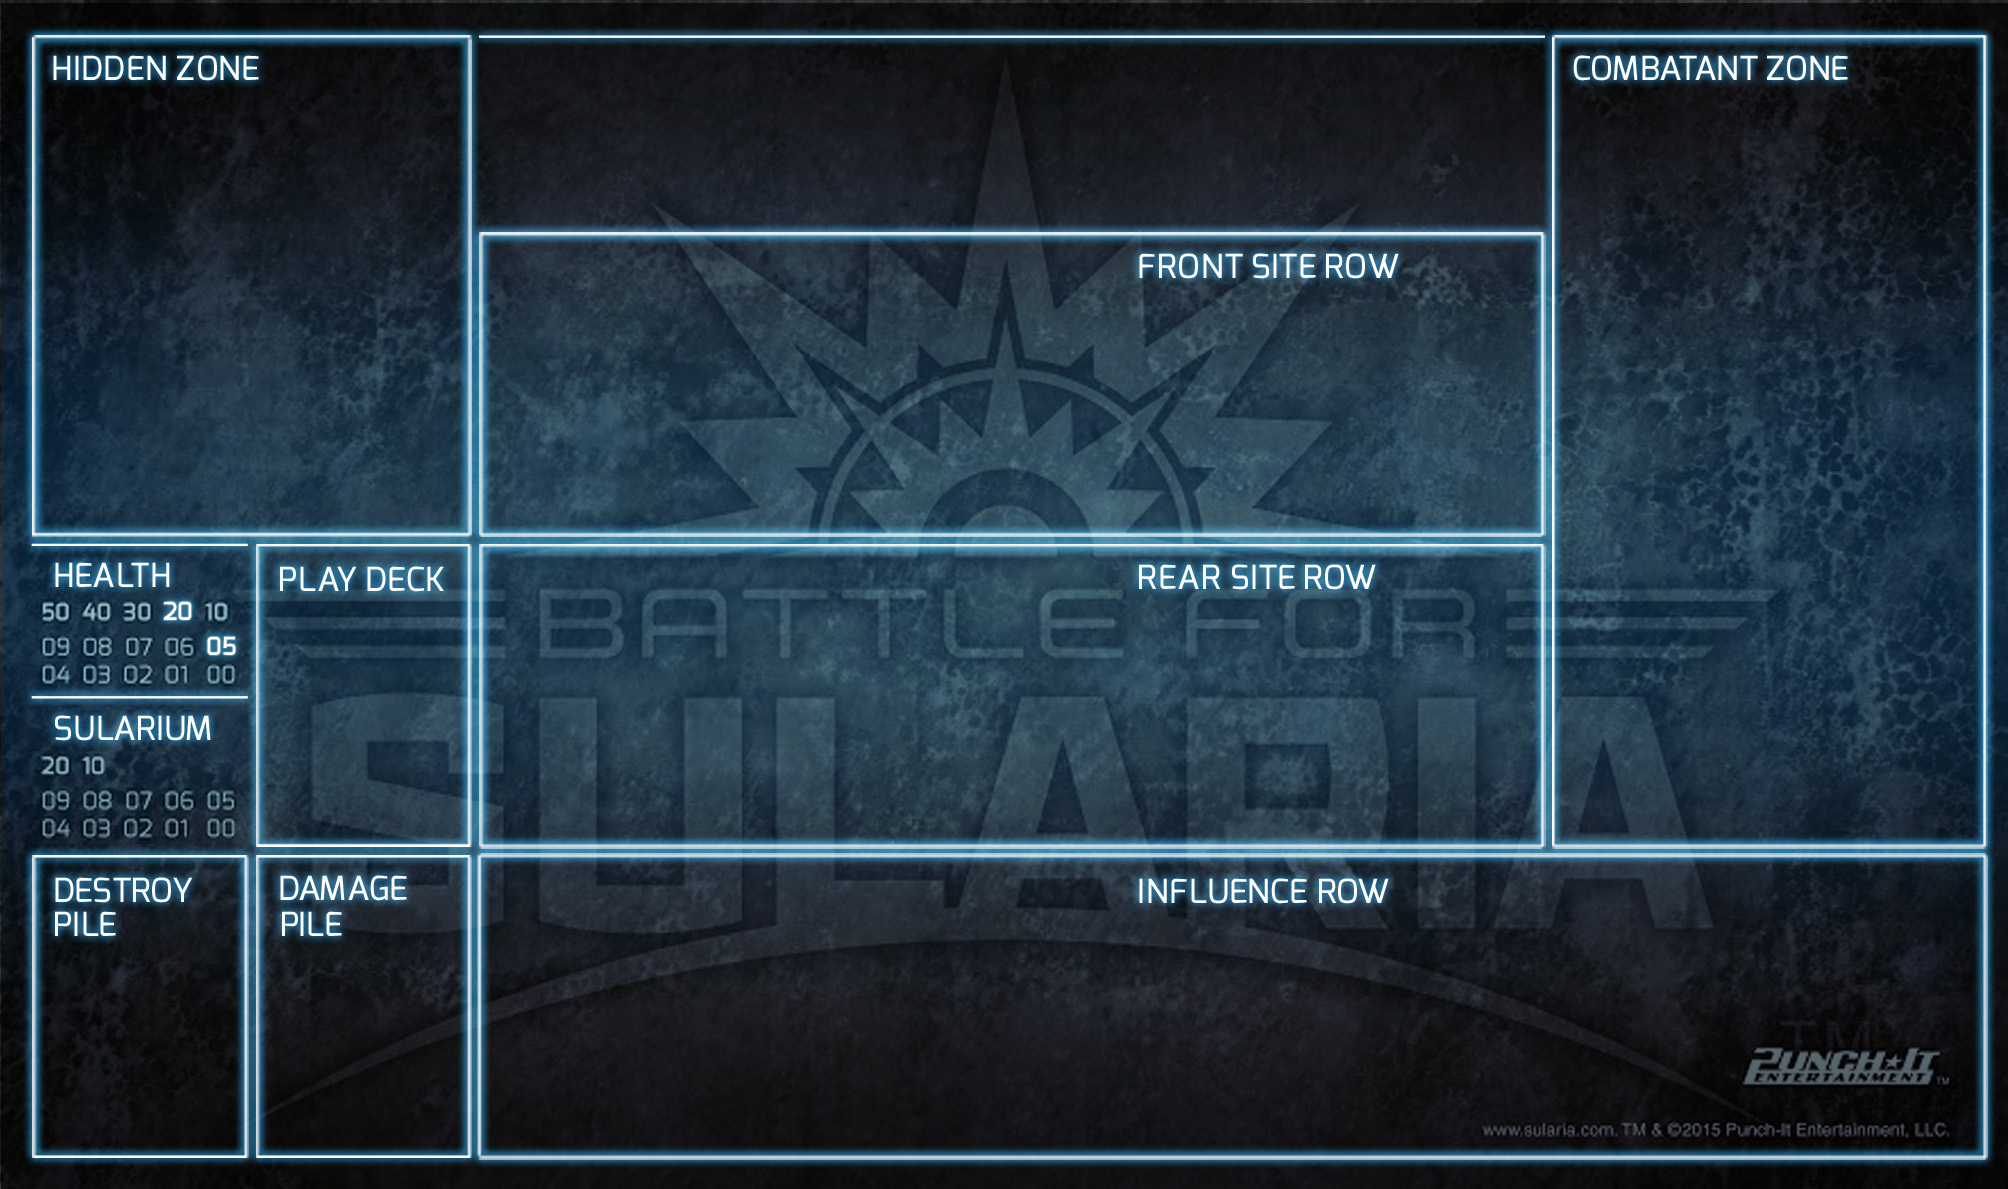 The game zones: Hidden, Combatant, Site Rows, Influence Row,Damage, Destroy, and Play Deck areas.